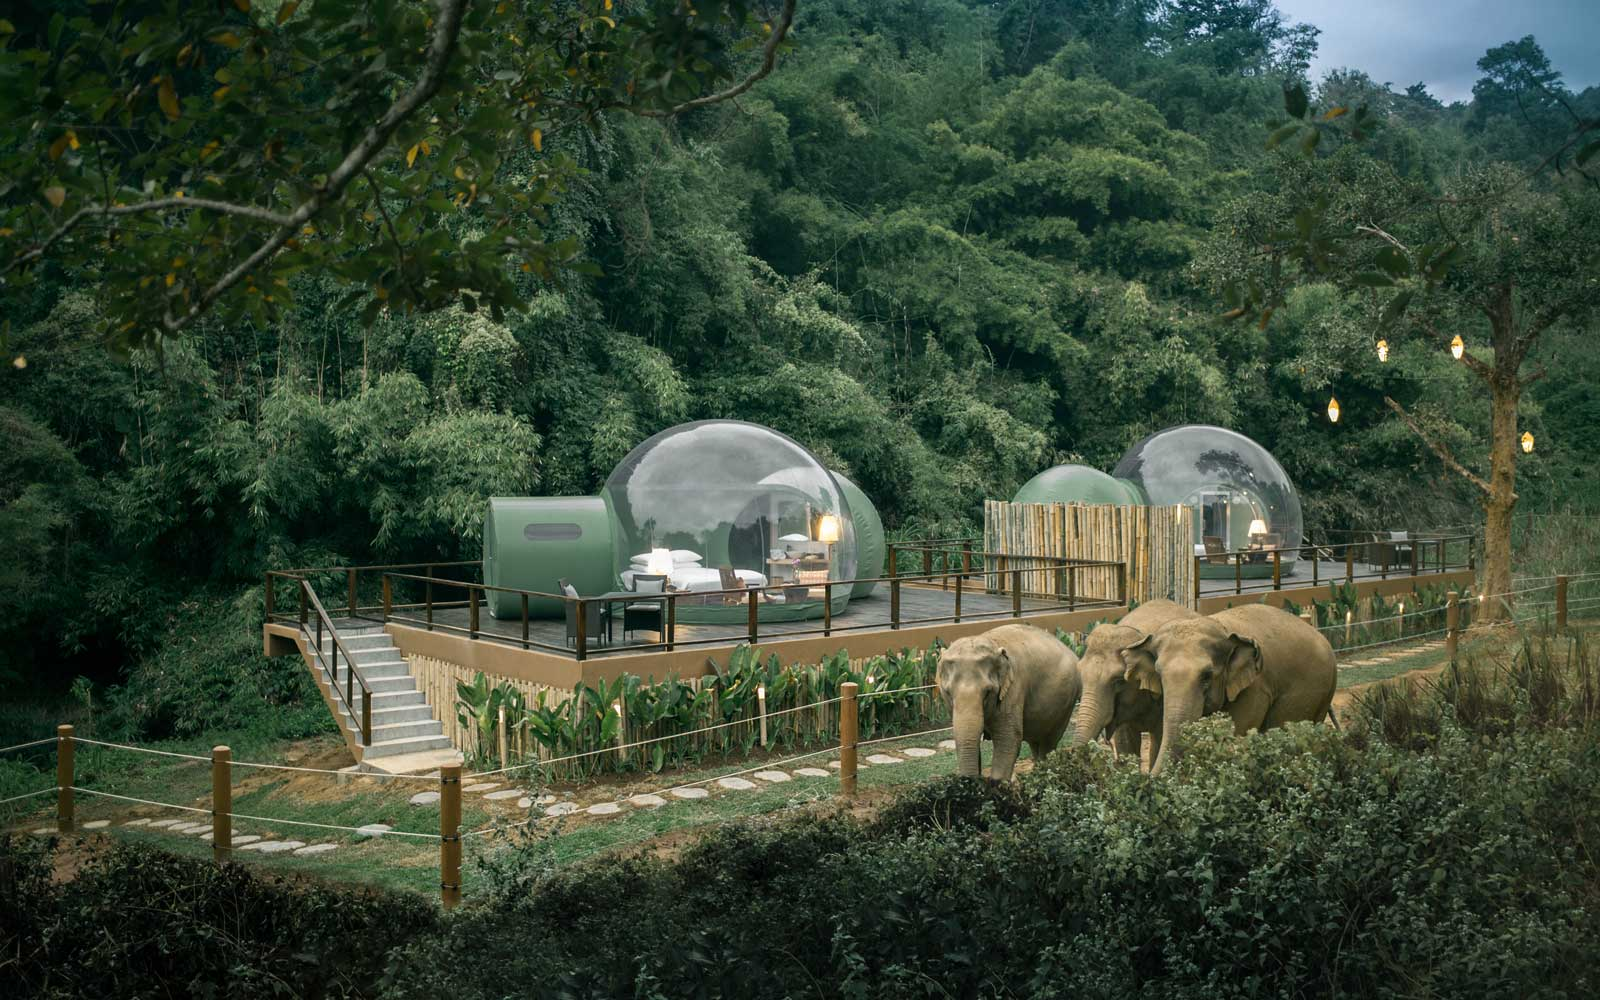 transparent luxury bubble suites, called Jungle Bubbles, which happen to be located in an area heavily trafficked by local elephants